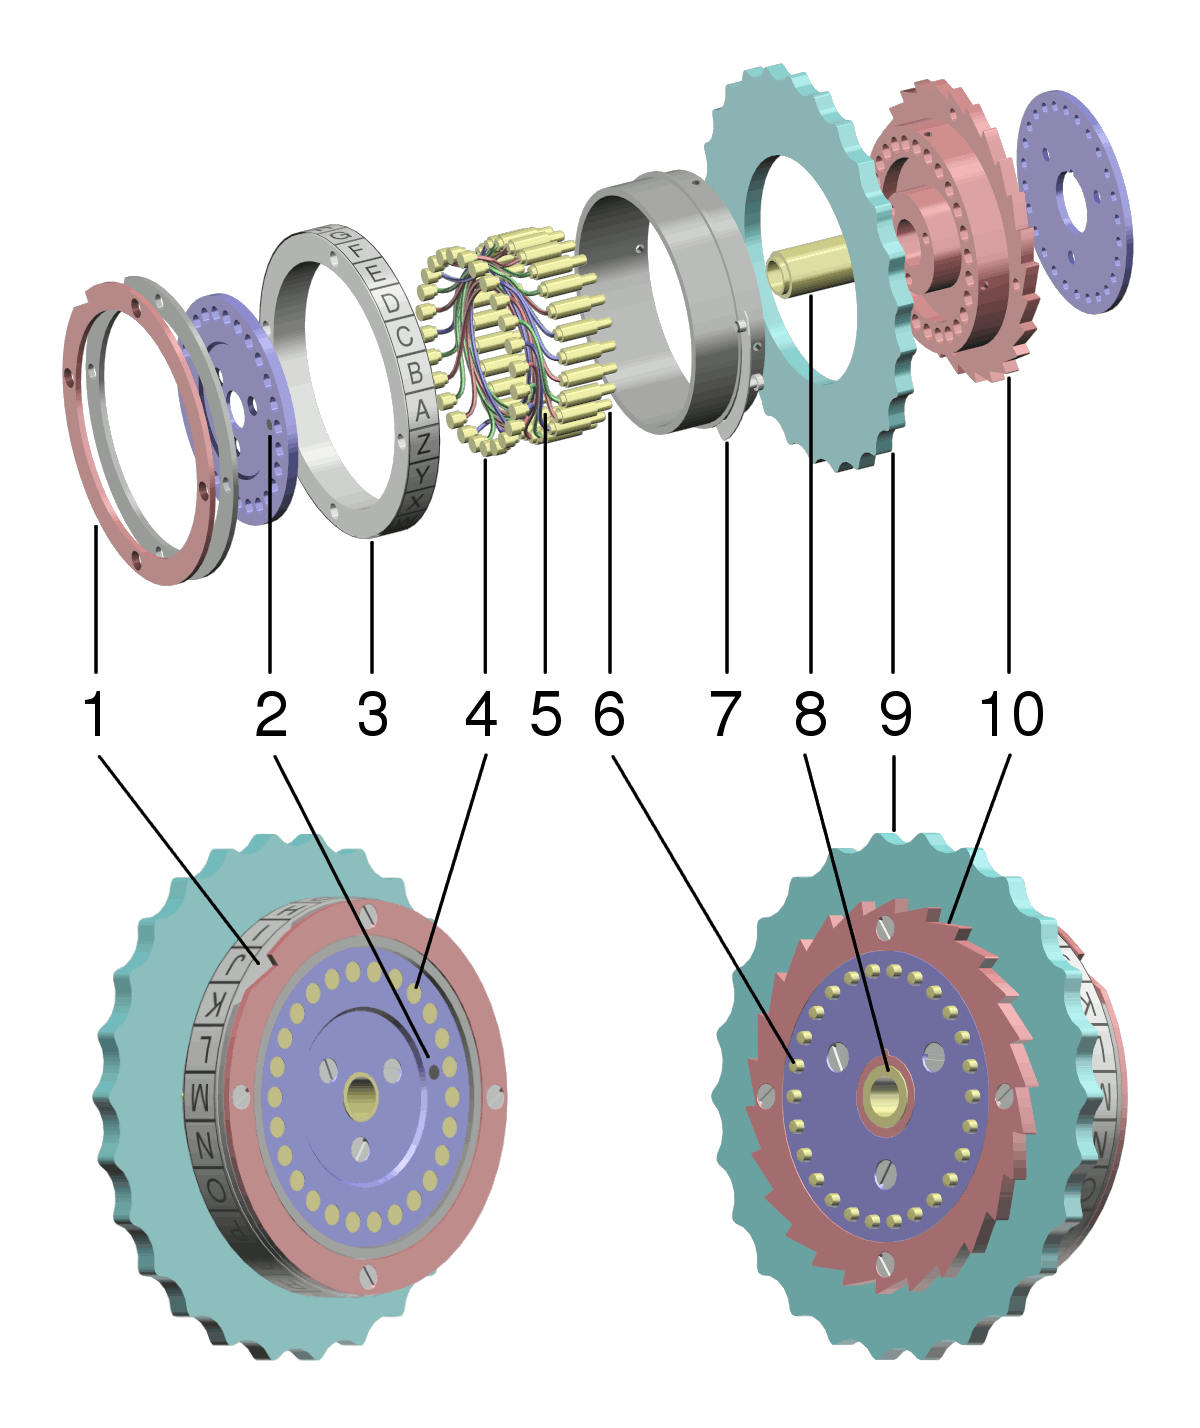 hight resolution of enigma rotor exploded view png